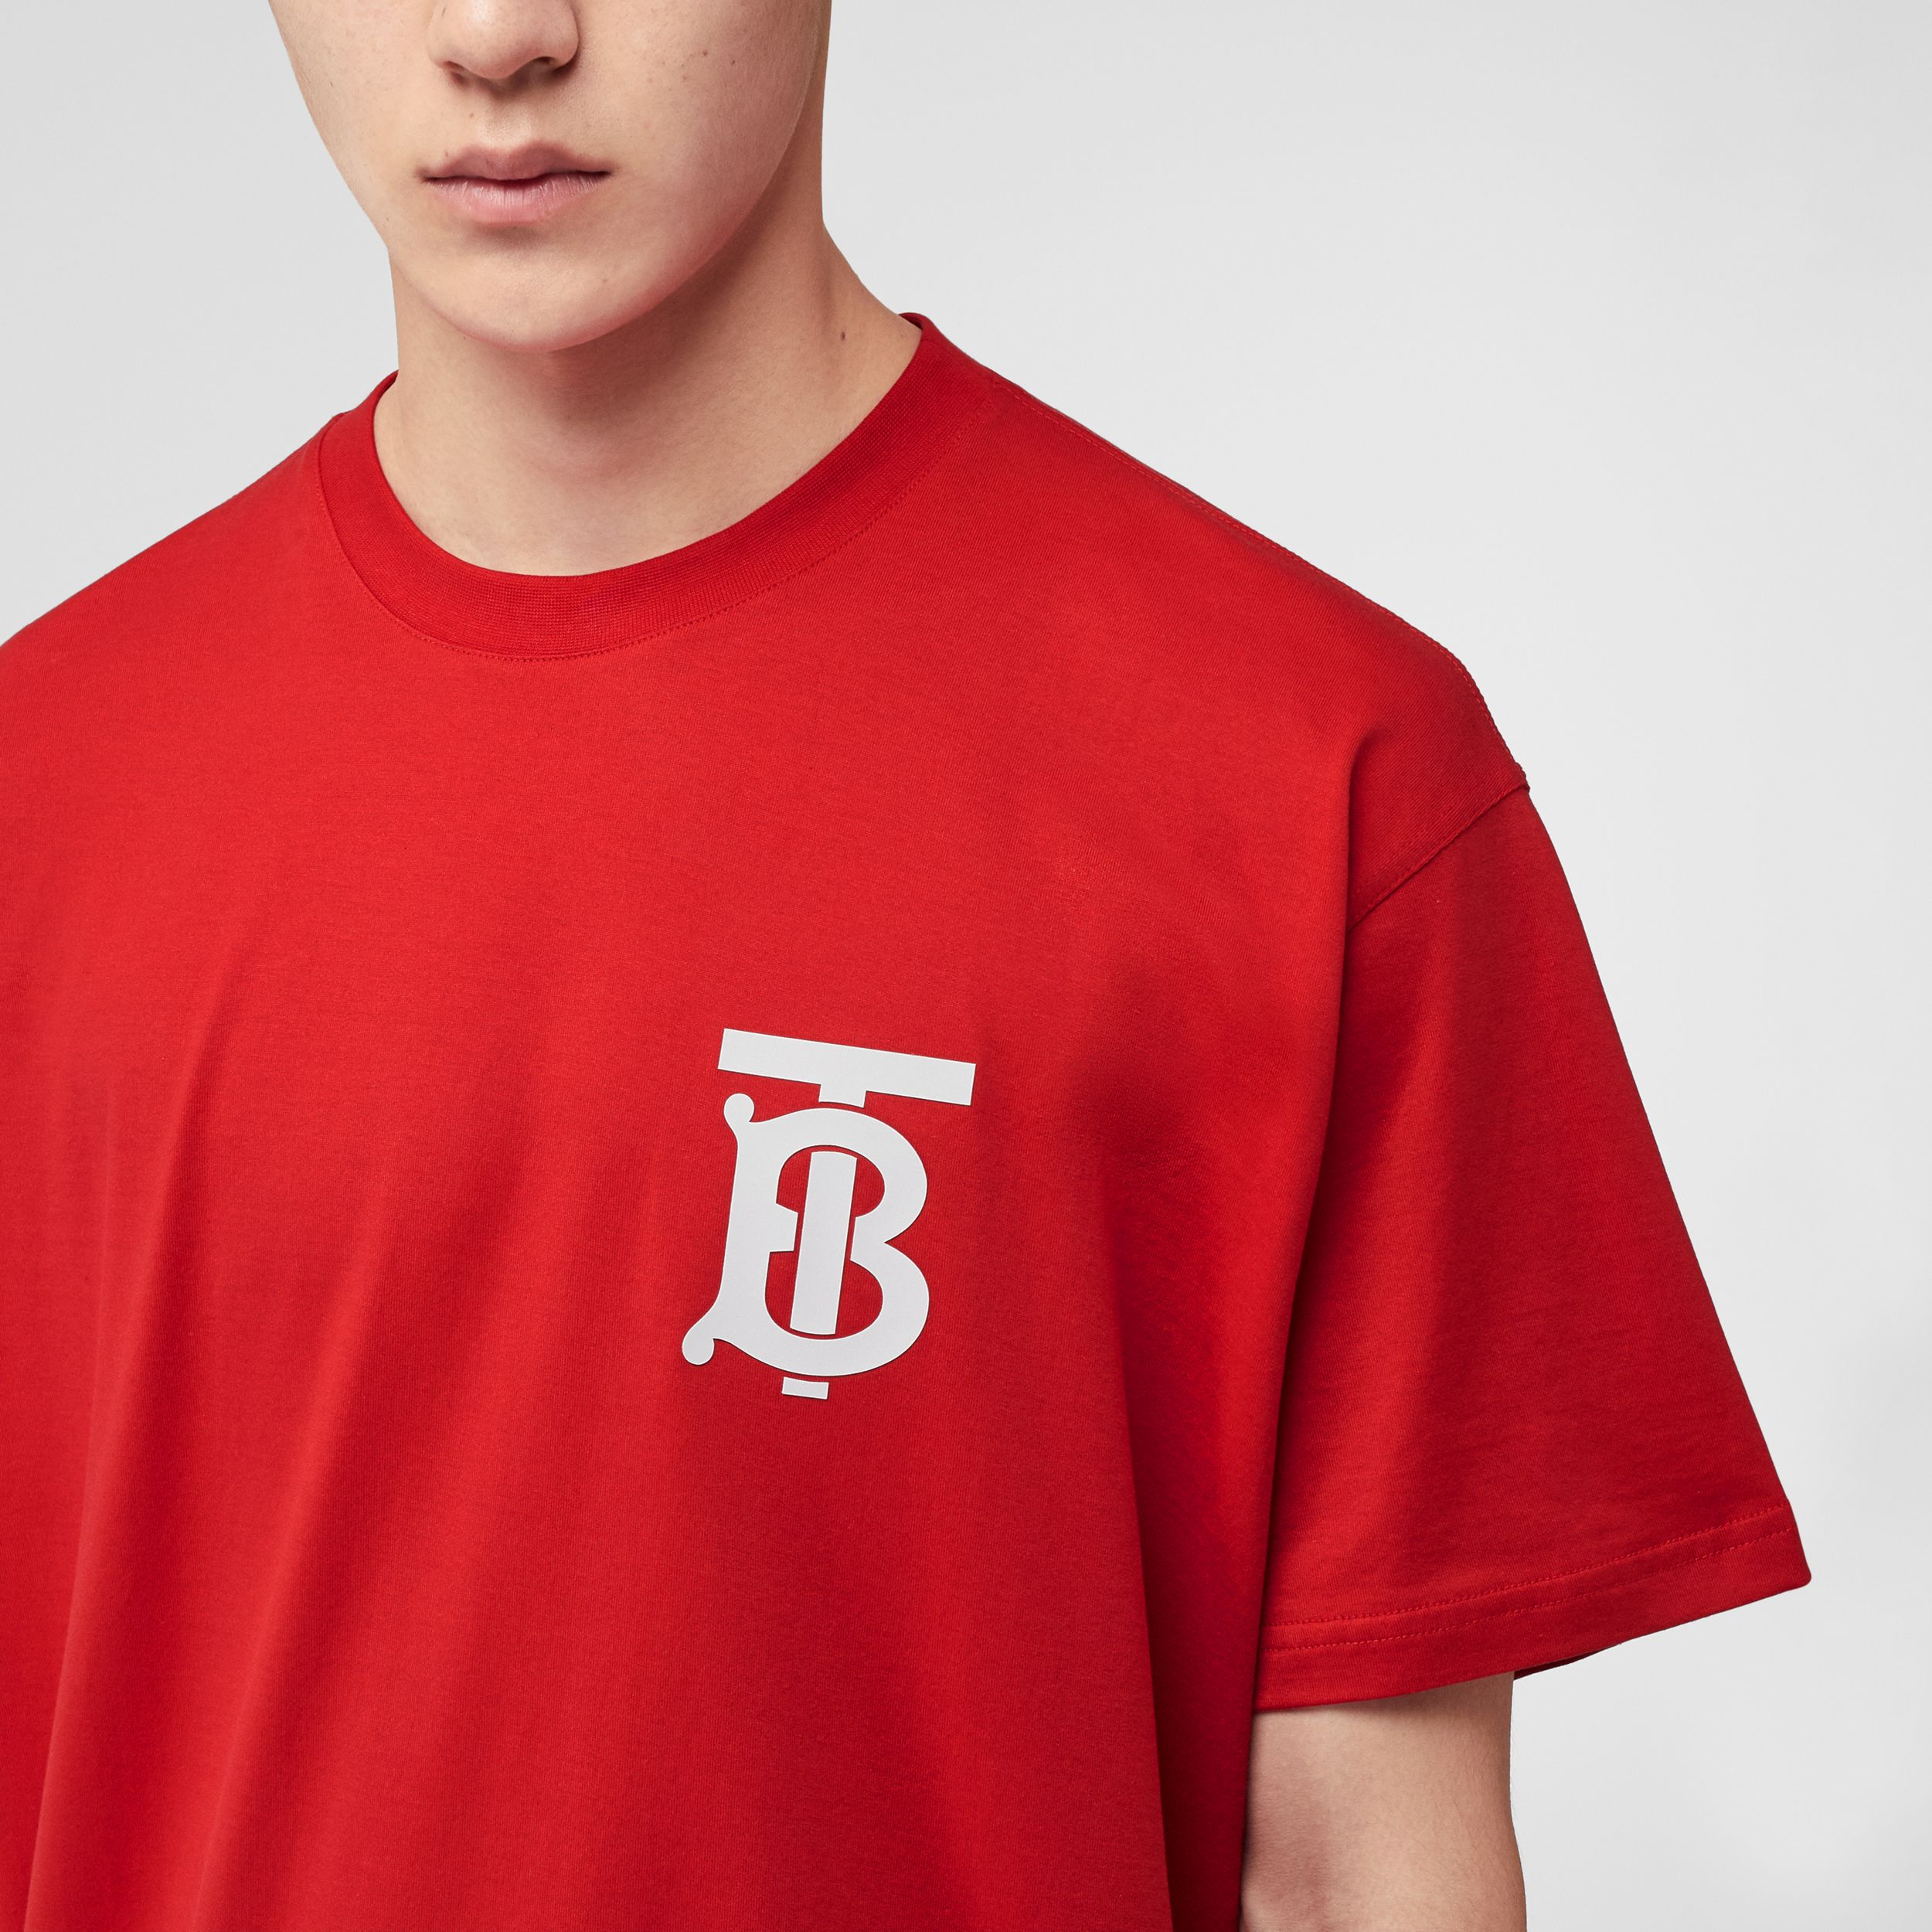 Monogram Motif Cotton Oversized T-shirt in Bright Red - Men | Burberry United Kingdom - 2